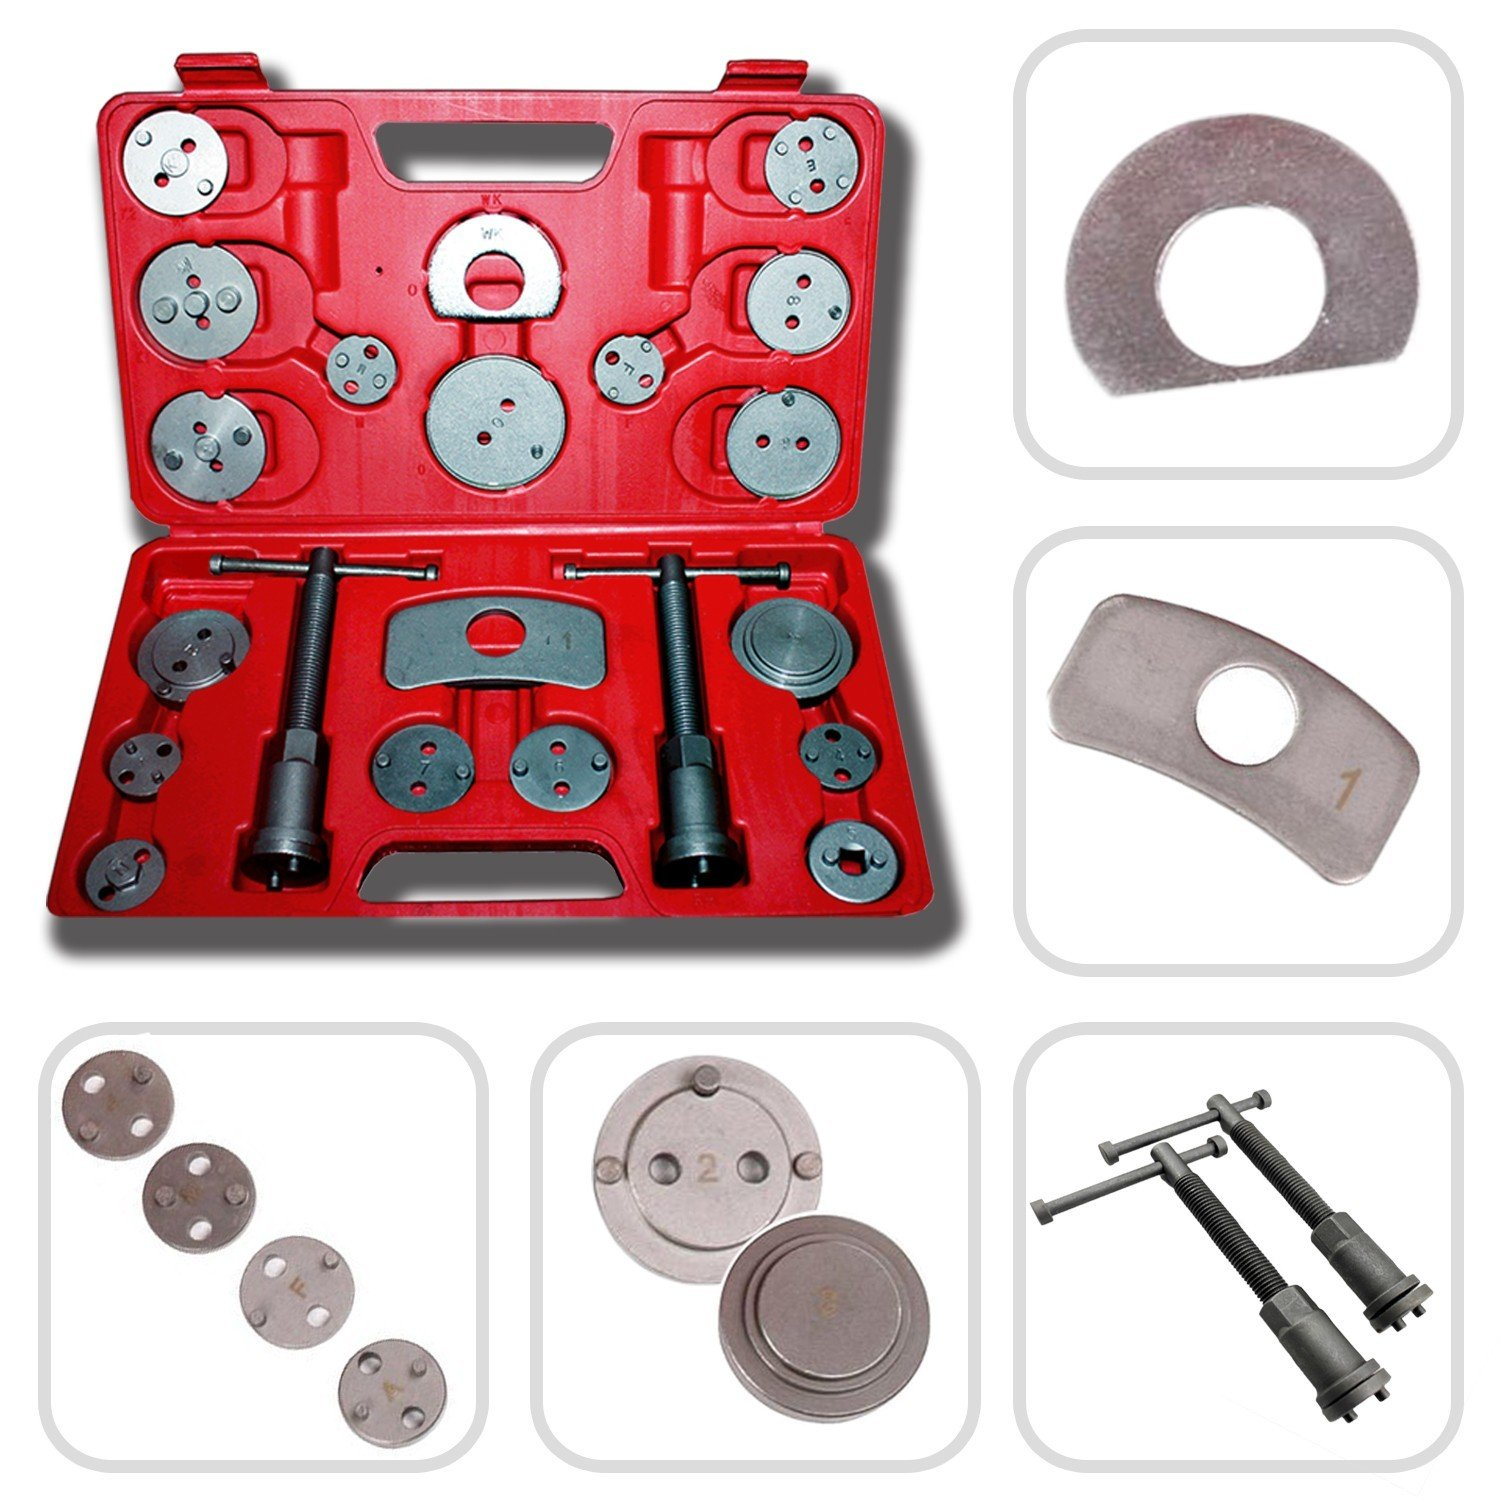 Todeco - Brake Repair Tool Kit, Brake Caliper Tool Set - Material: C45 steel - Case size: 31 x 21.5 x 6 cm - 21 Parts, with Red case